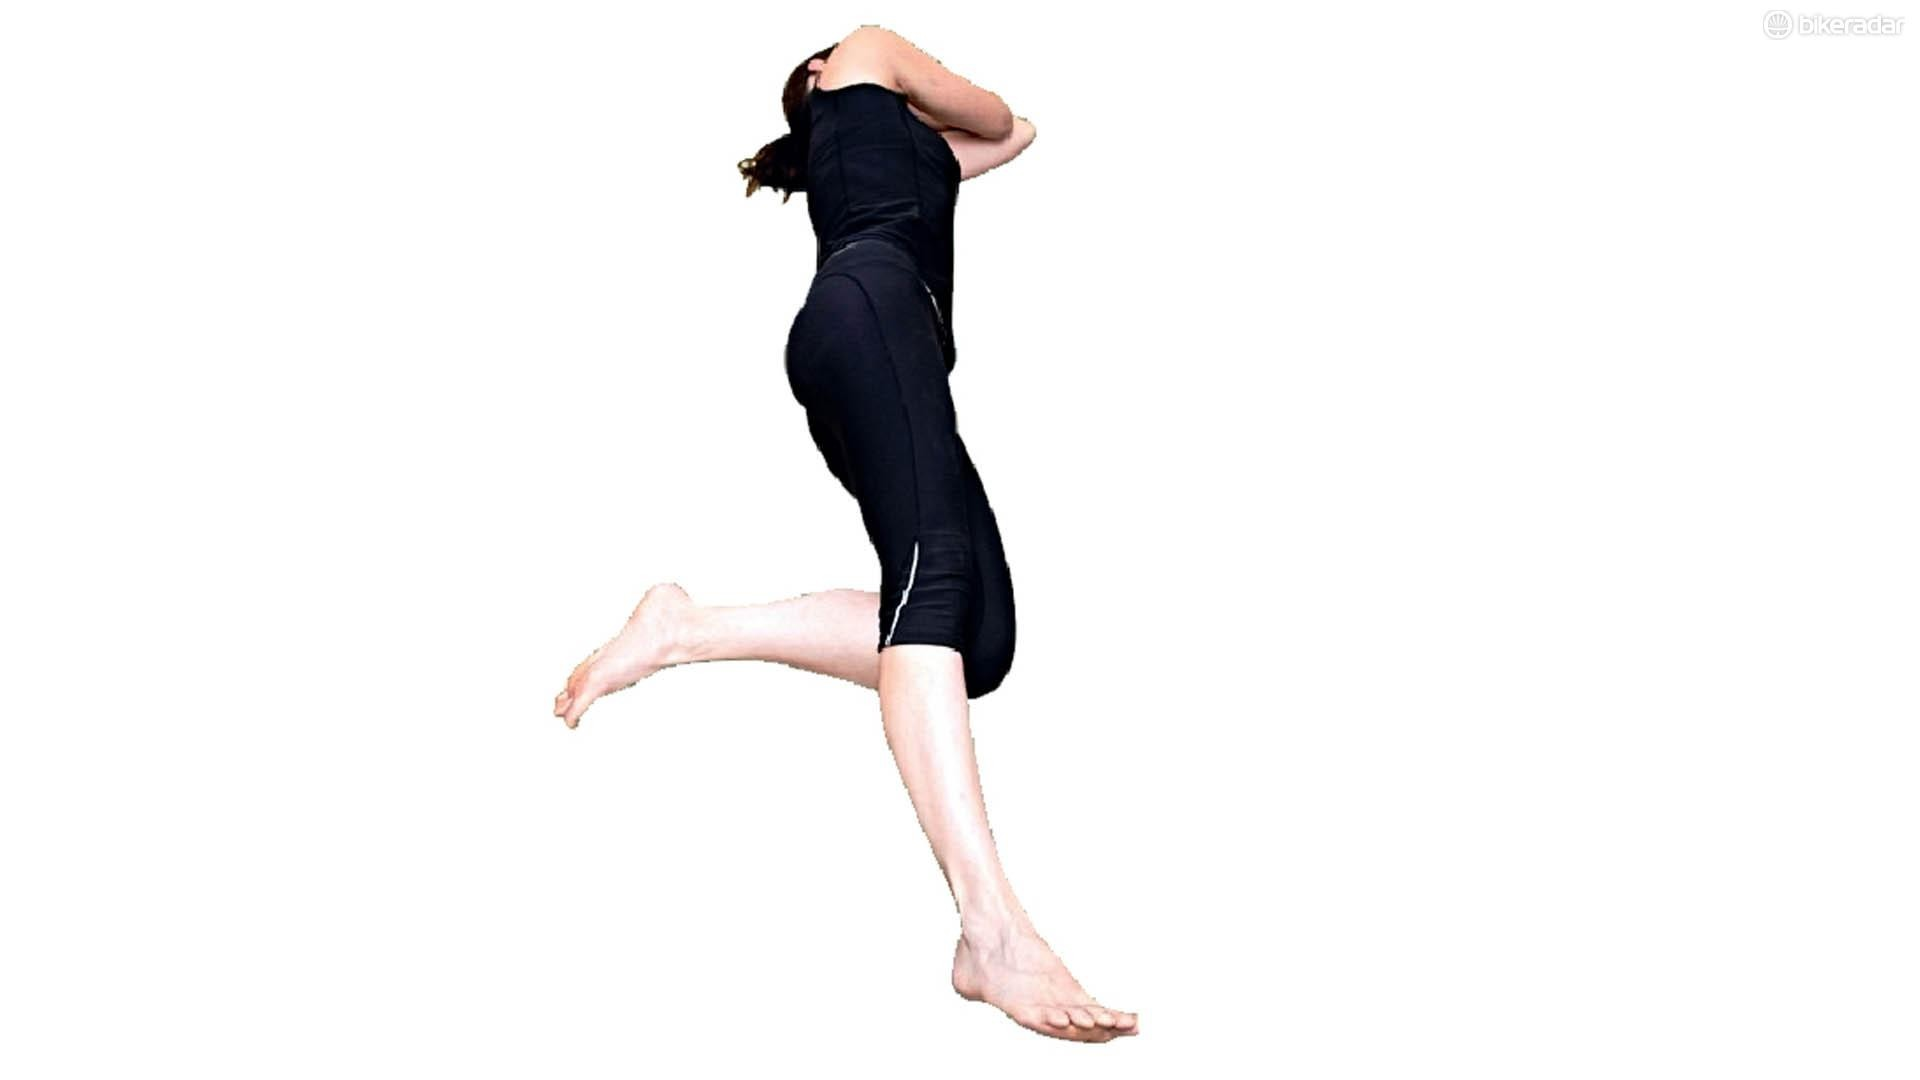 Lying on your side with both legs straight out in front of you, gradually bend the lower leg back until the knee forms a right angle. This will help stretch out the knee joint